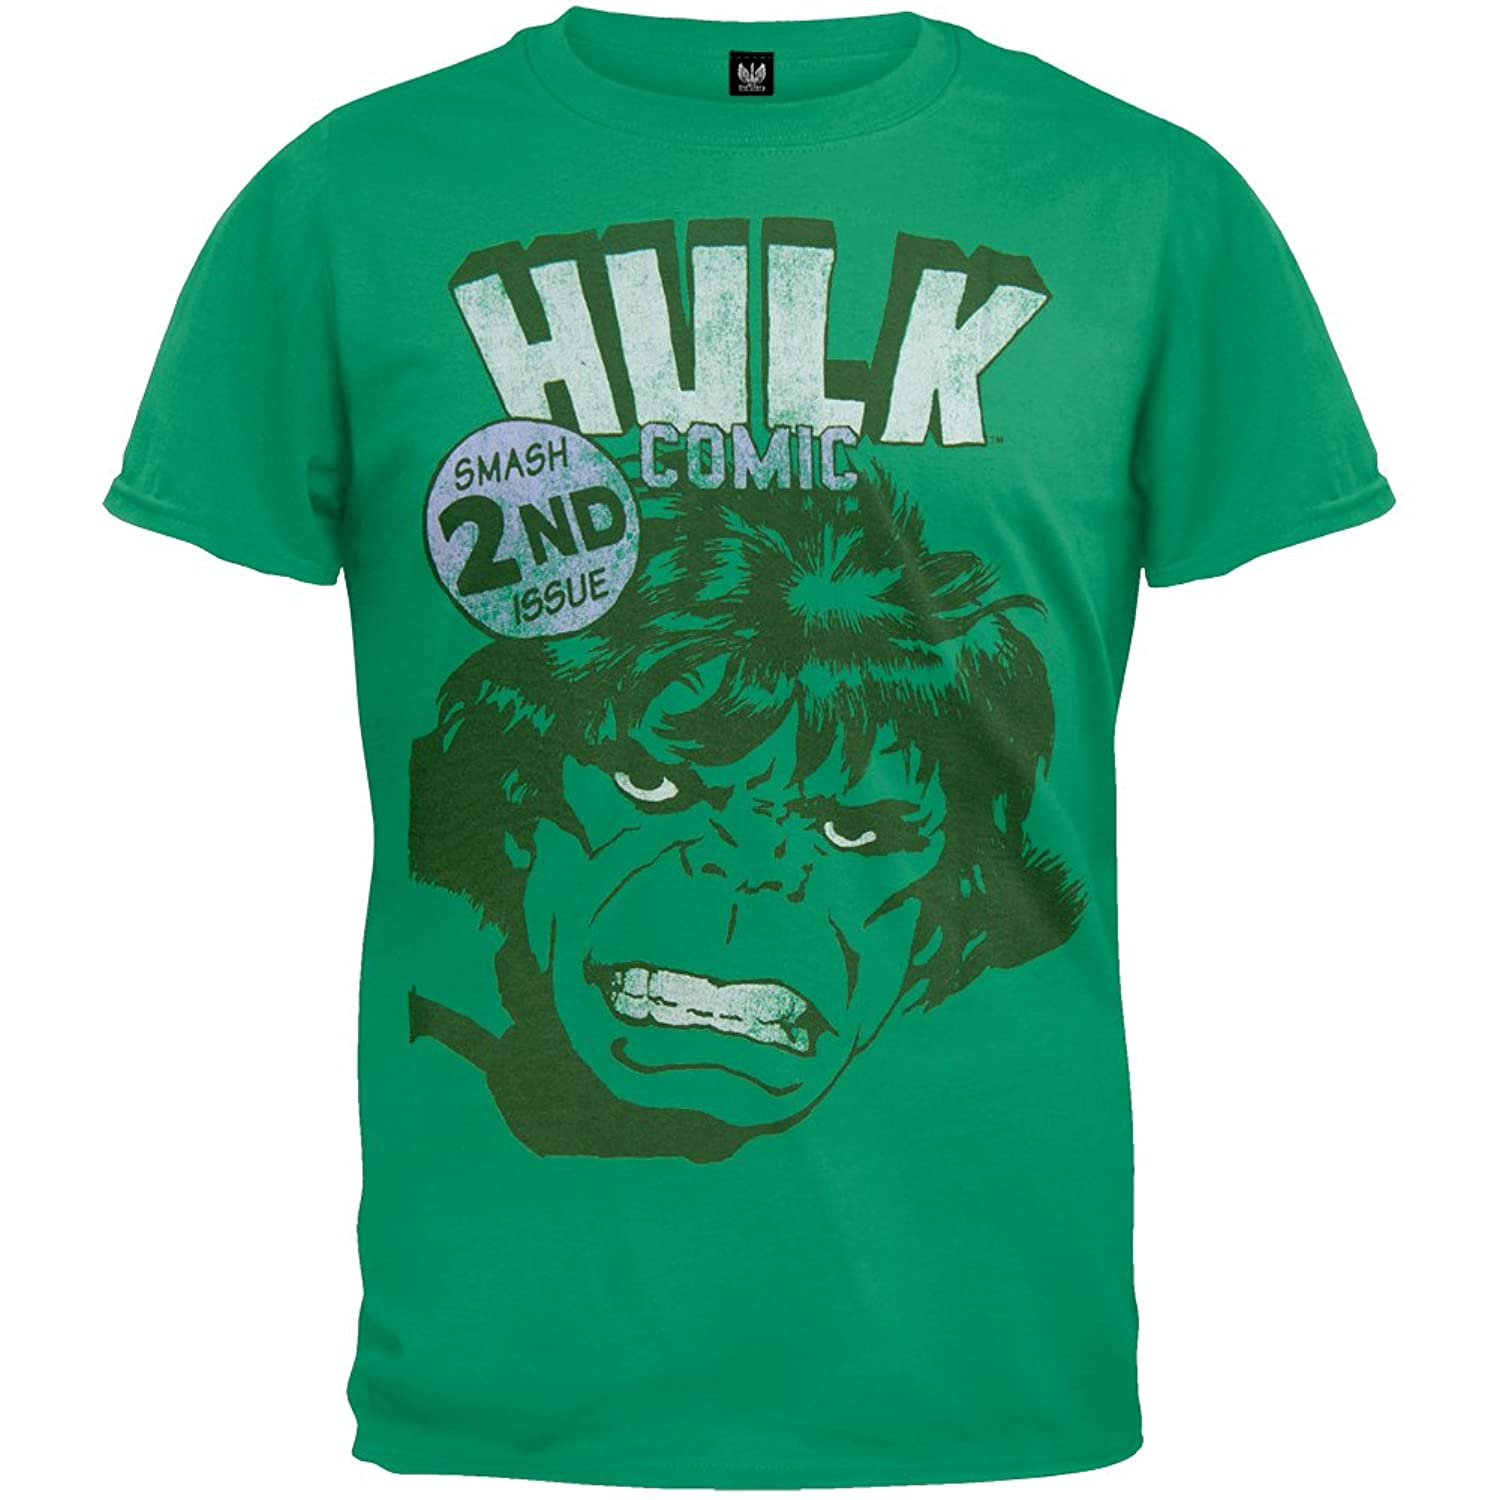 Incredible Hulk - Smash 2nd Issue Soft T-Shirt international political structure in a post cold war era